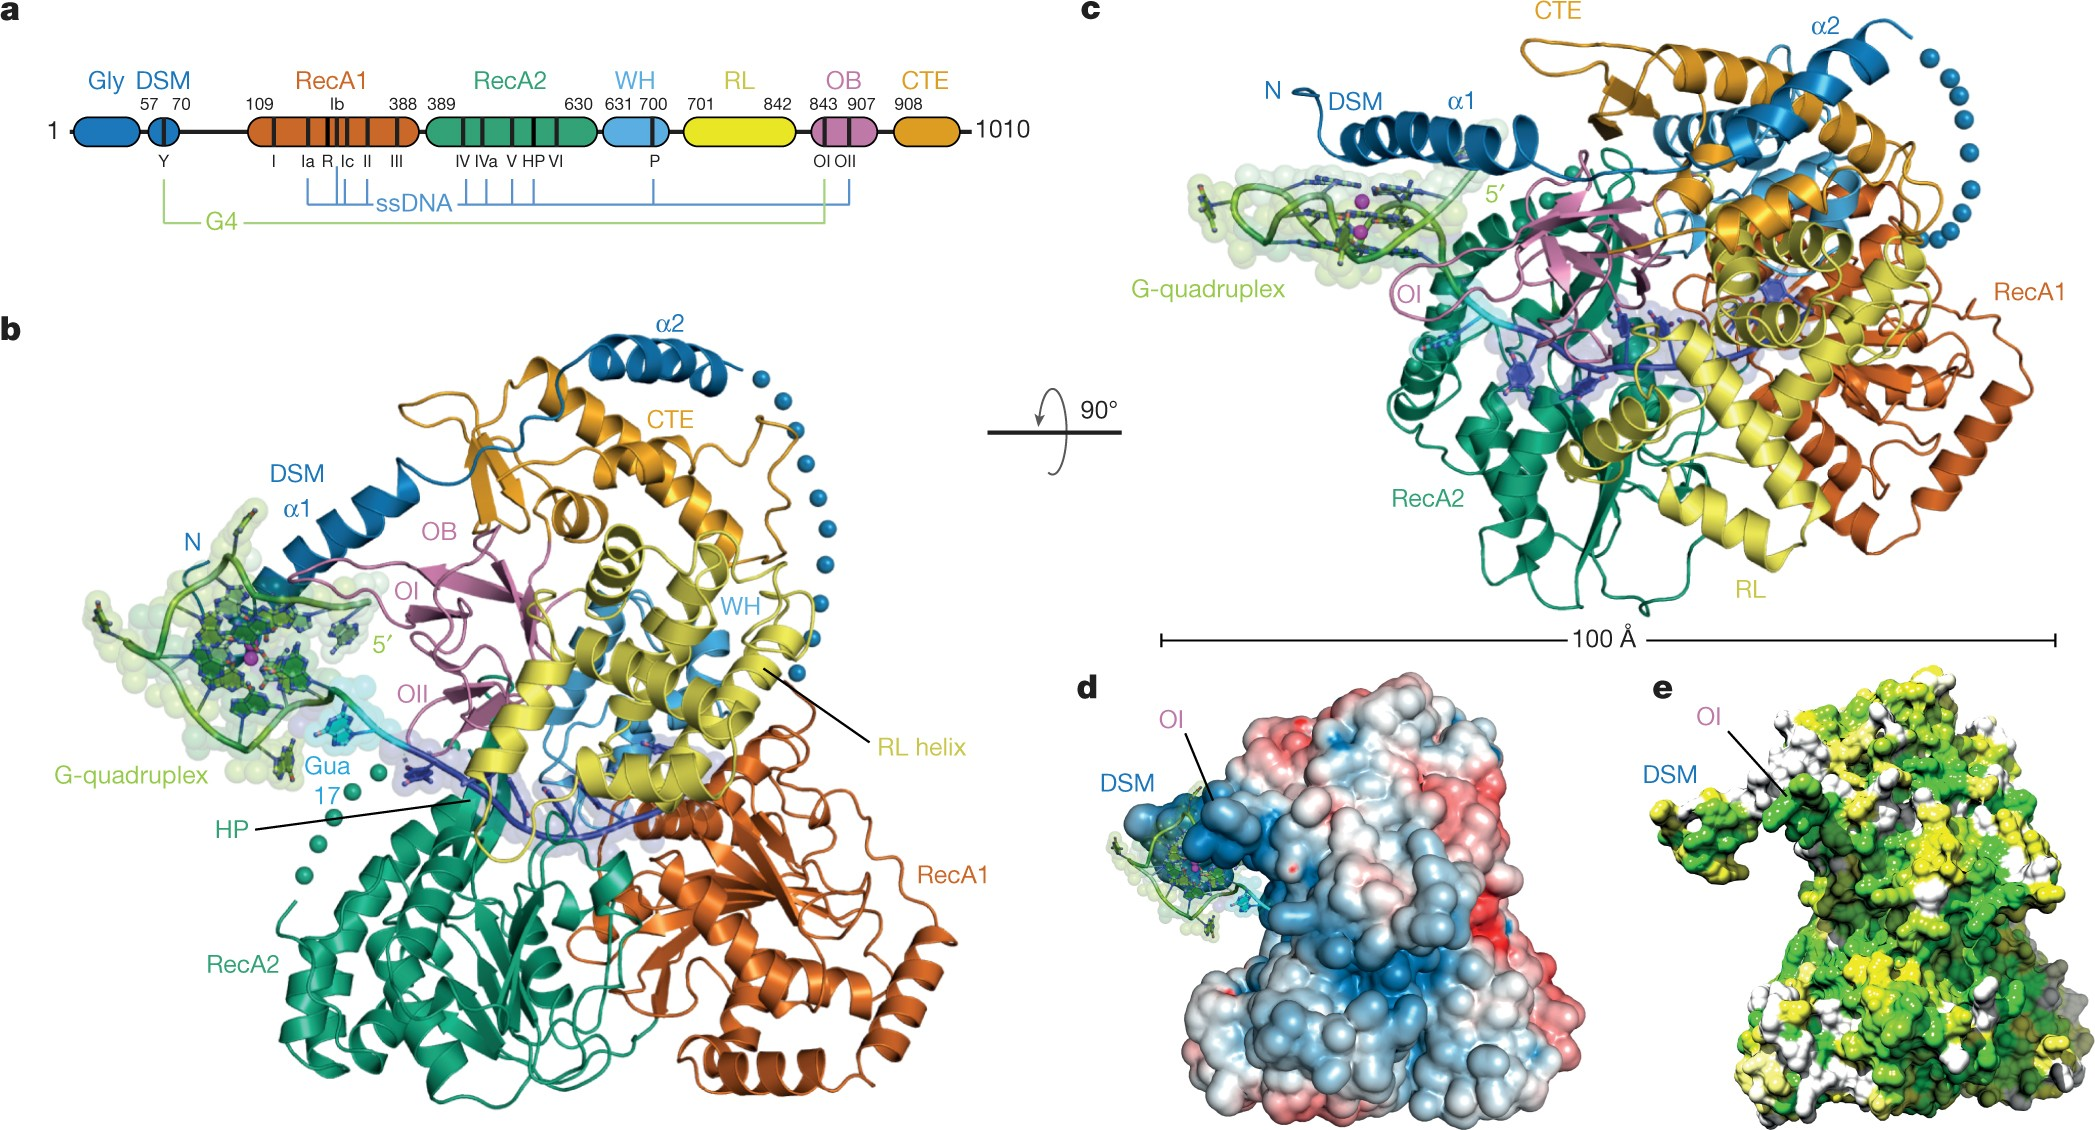 Structural Basis Of G Quadruplex Unfolding By The Deah Rha Helicase 3 Phase Motor Starter In On June 16 2014 1 Comments Dhx36 Nature